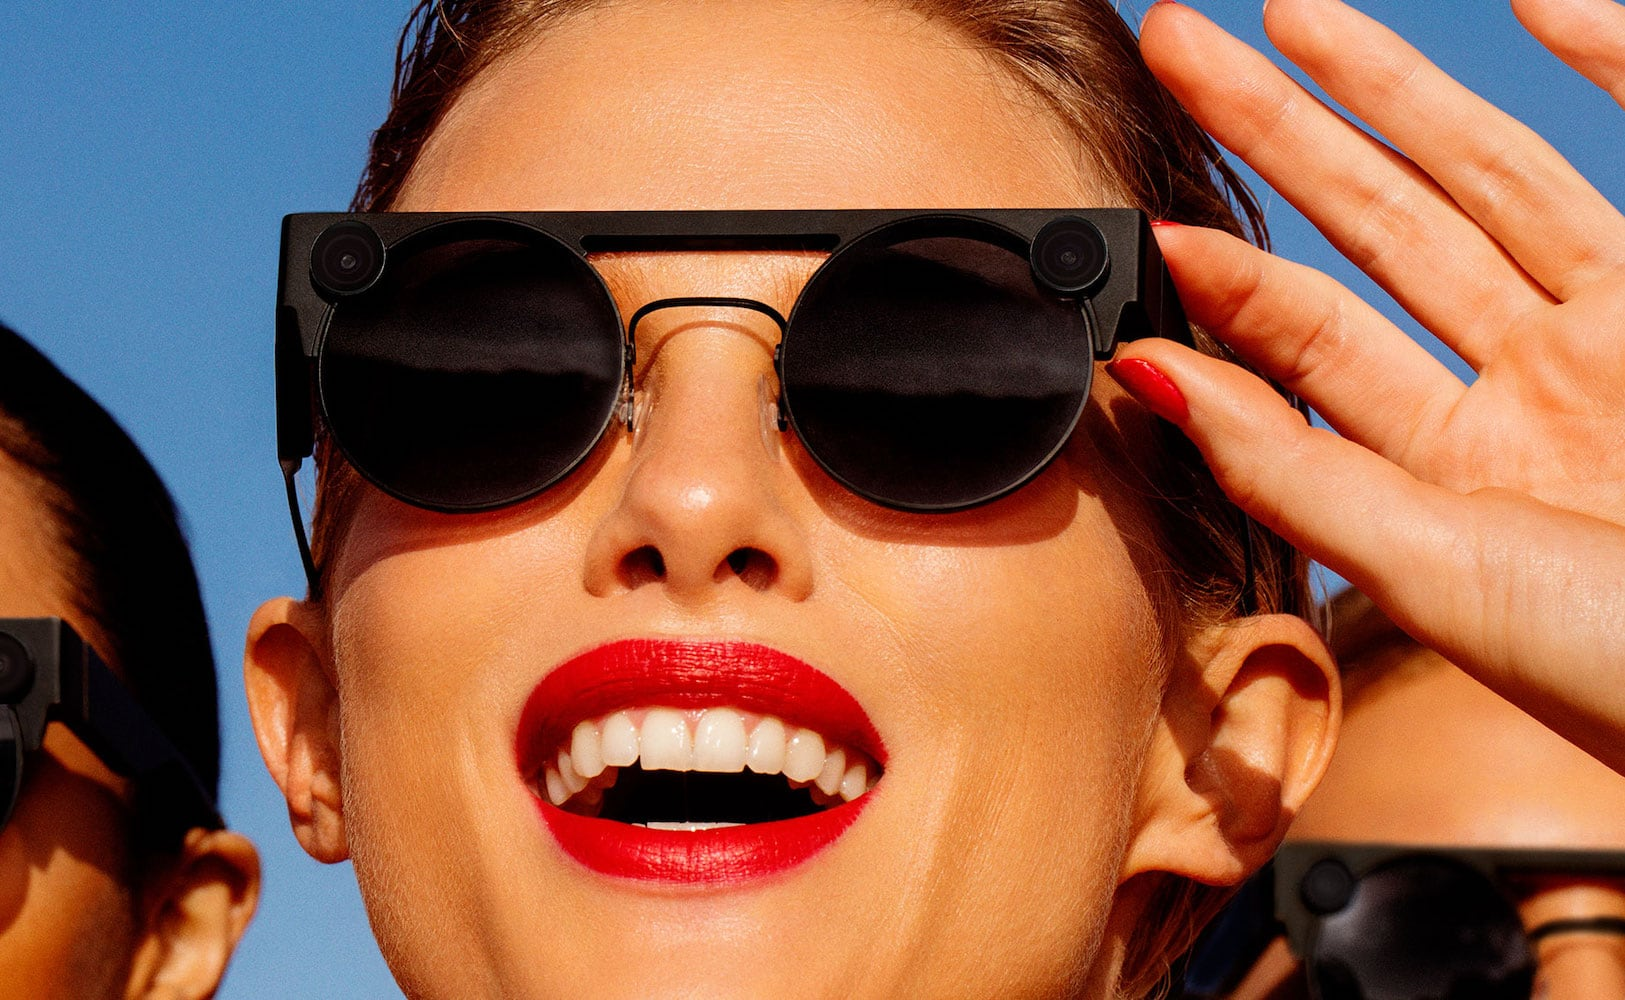 Snapchat Spectacles 3 3D Video